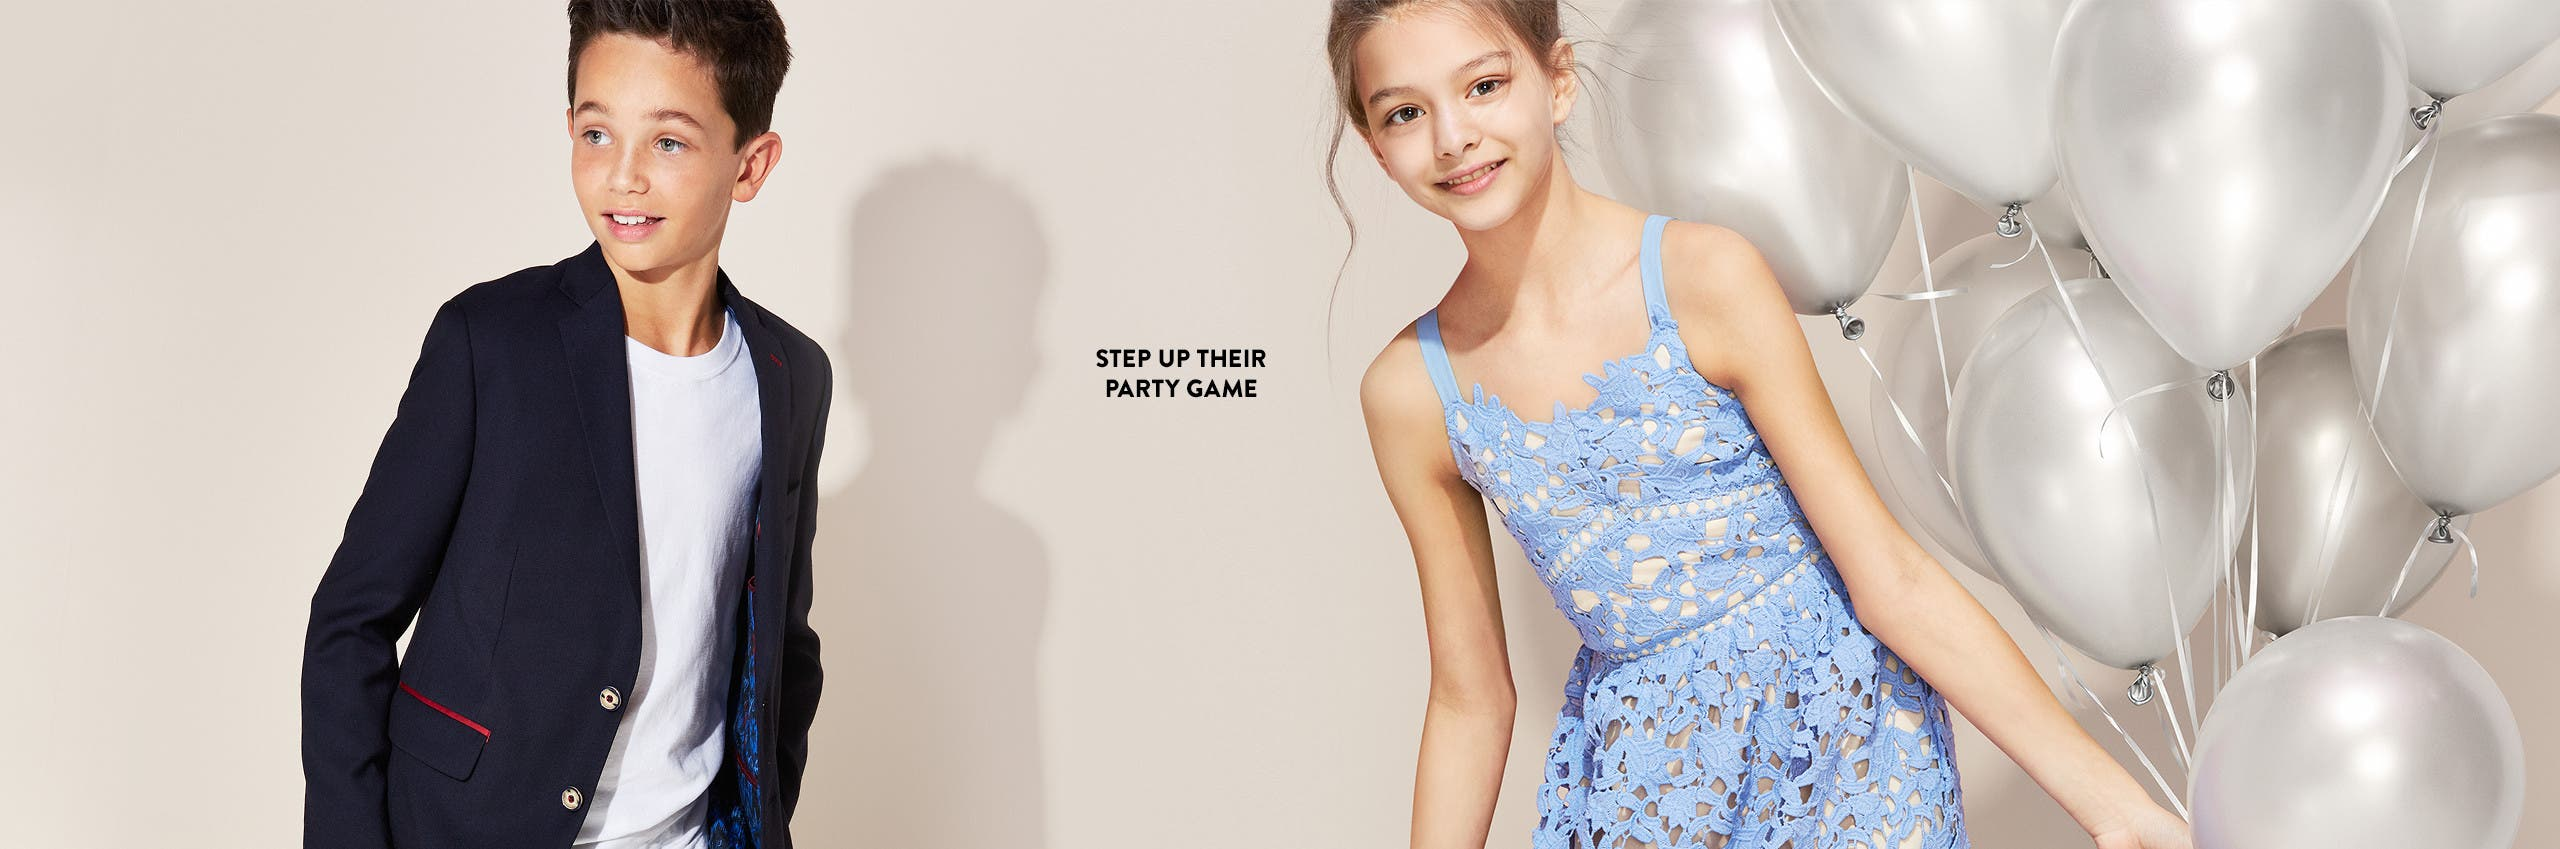 Step up their party game with new special-occasion clothing for kids.